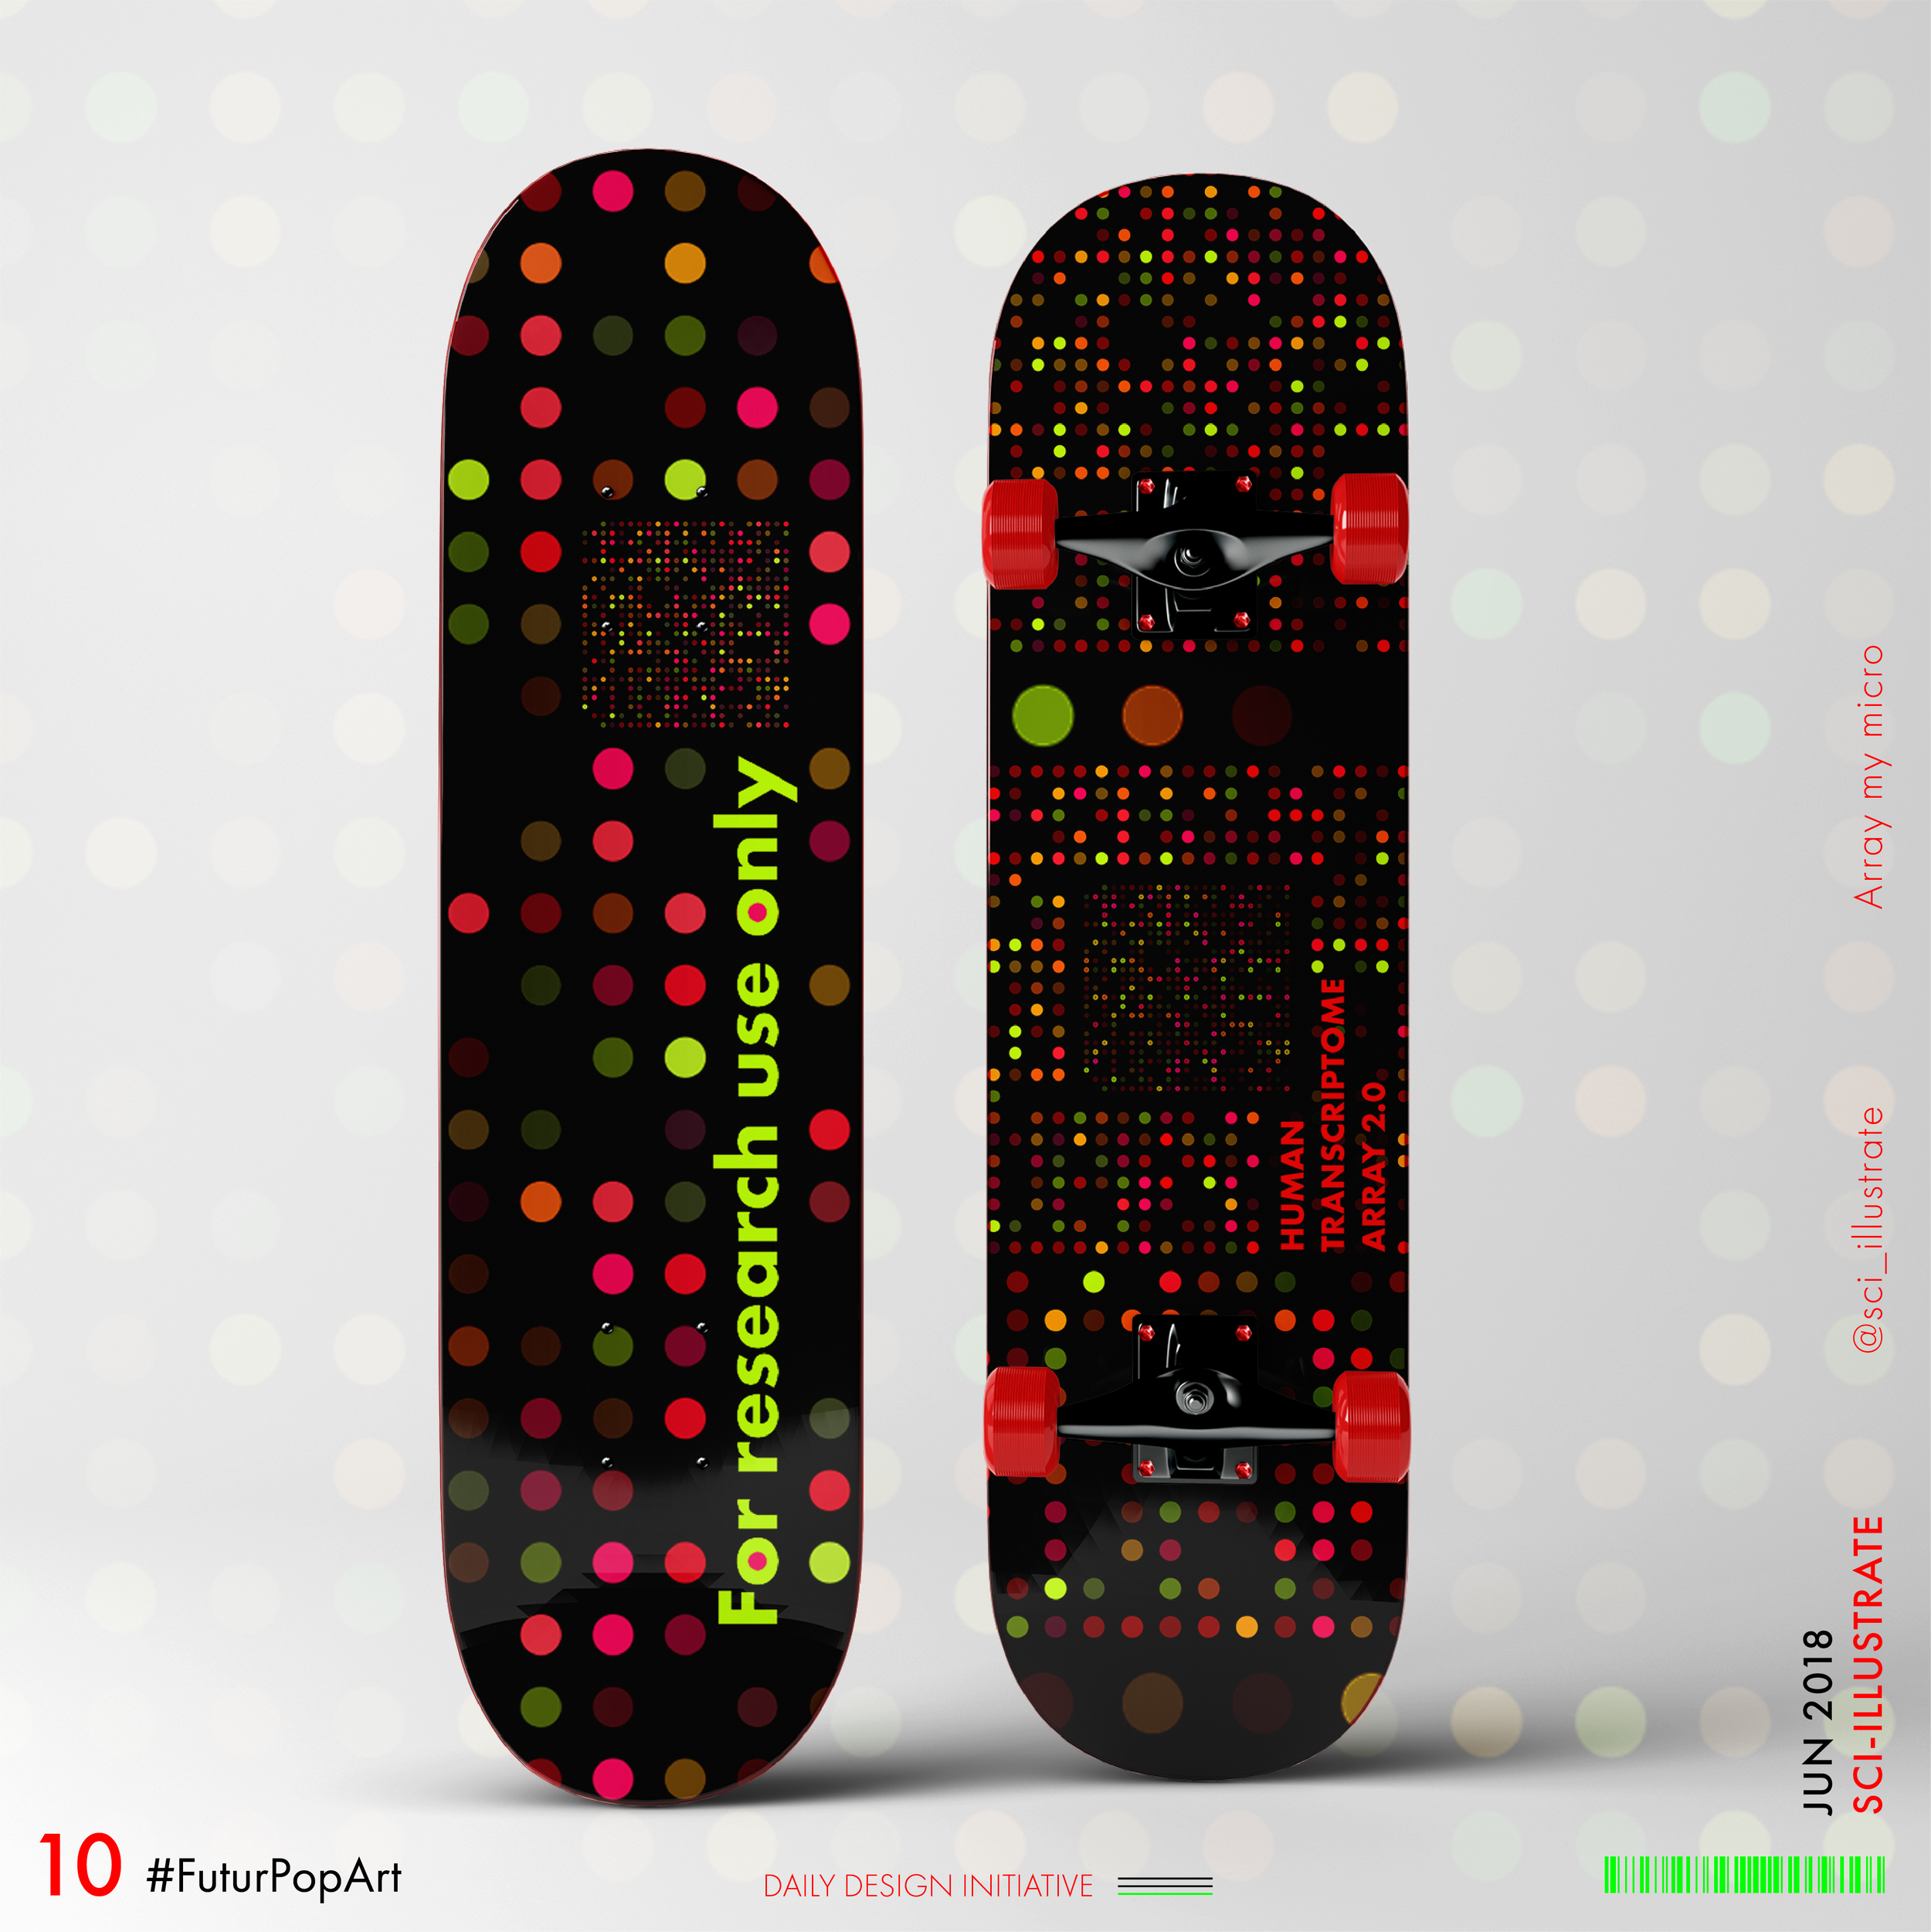 100918_Futurpopart_Sci-illustrate Microarray-01.png